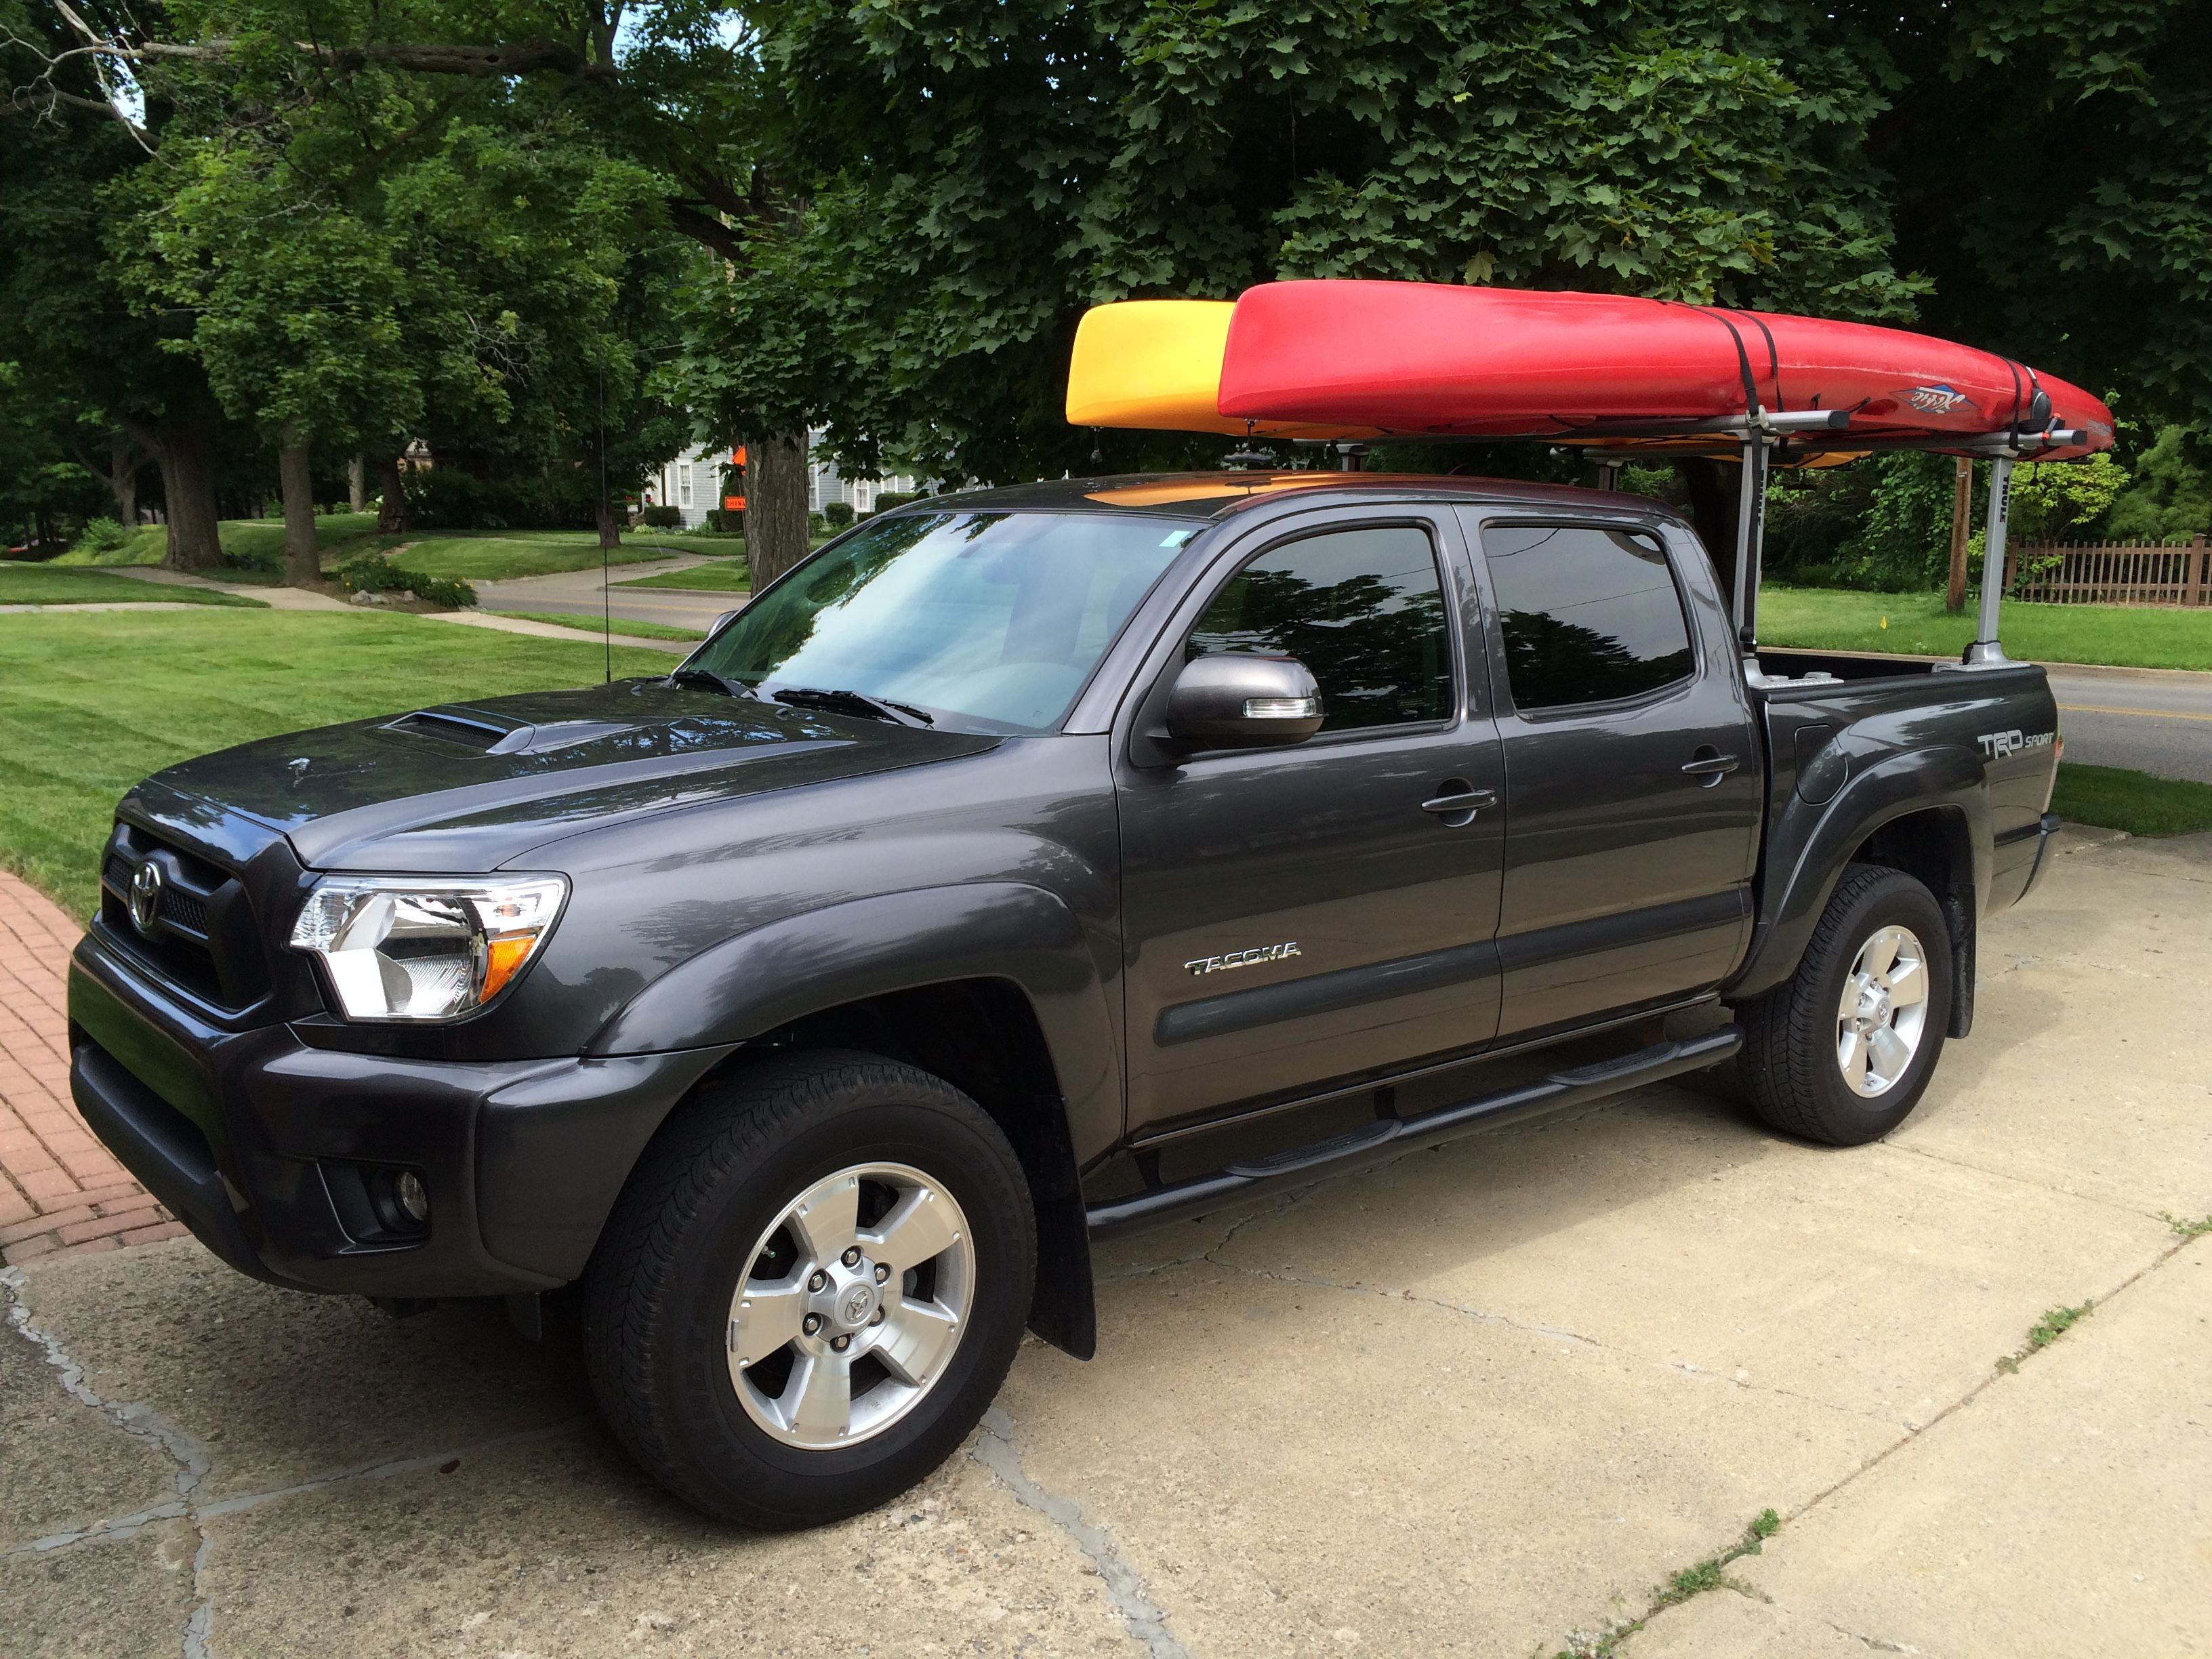 canoe racks as full for also conjunction amazon size well plus kayak a homemade truck with pickup in trucks of rack